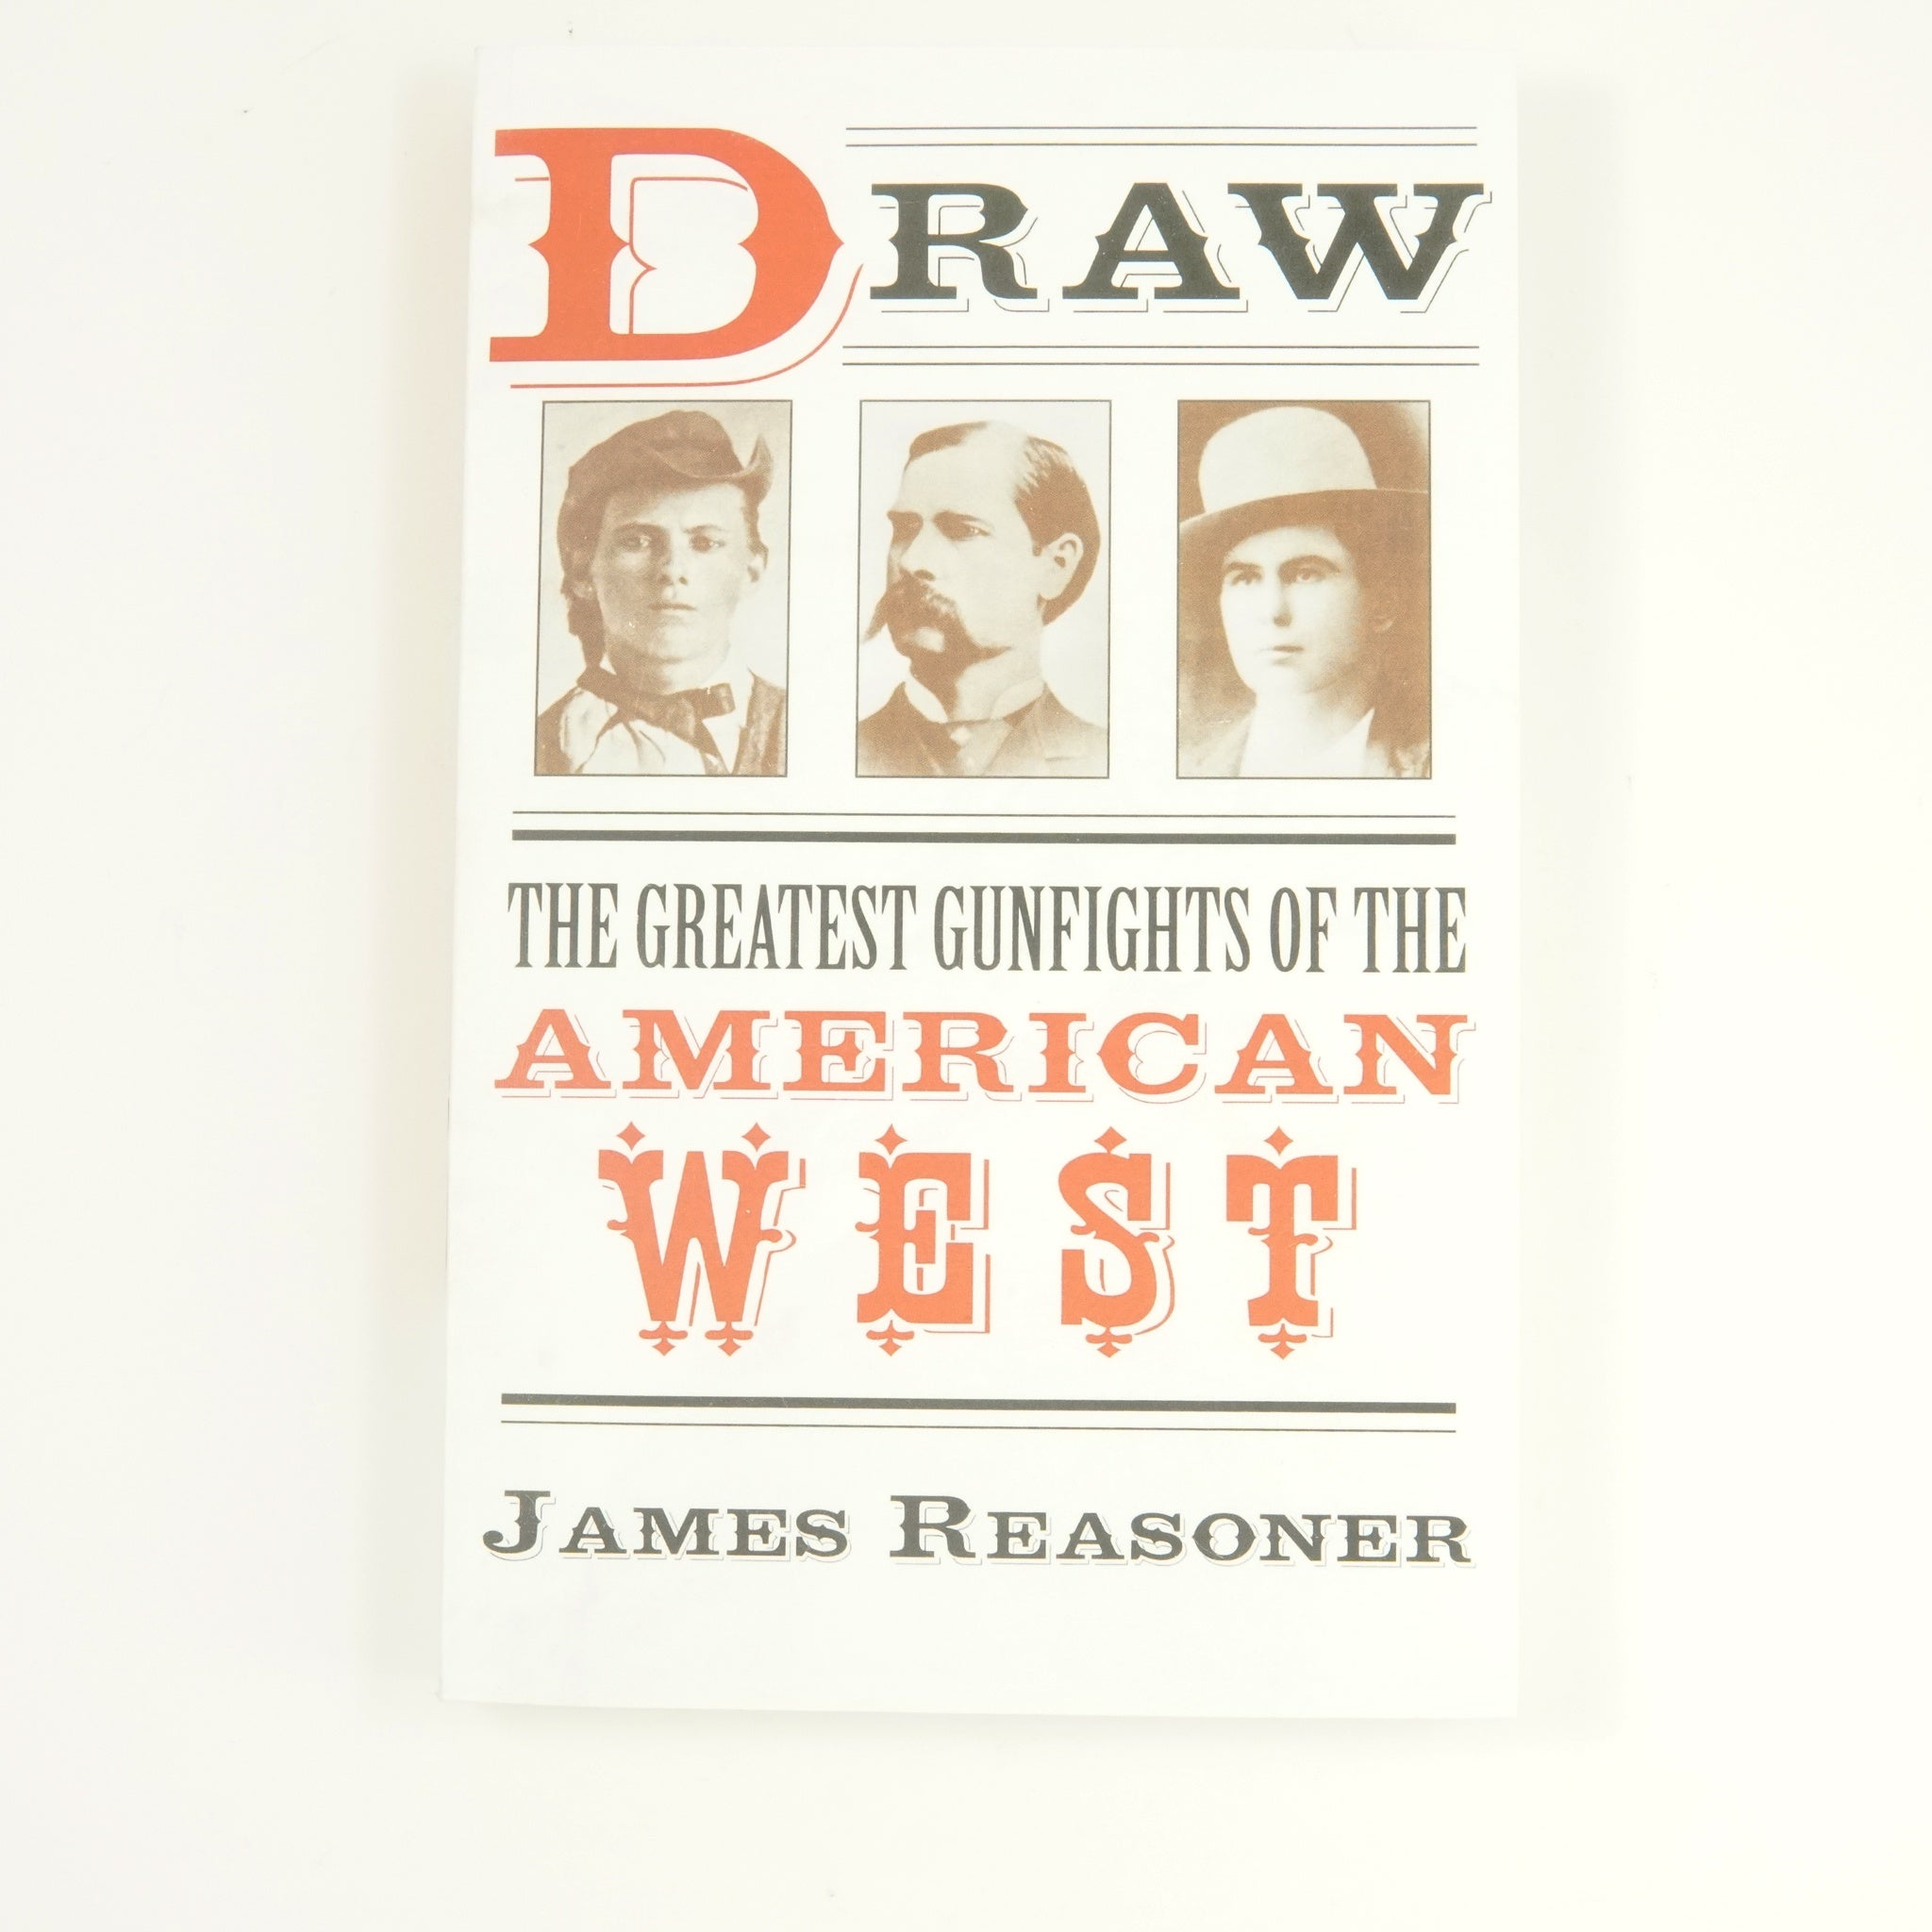 Draw: The Greatest Gunfights of the American West by James Reasoner